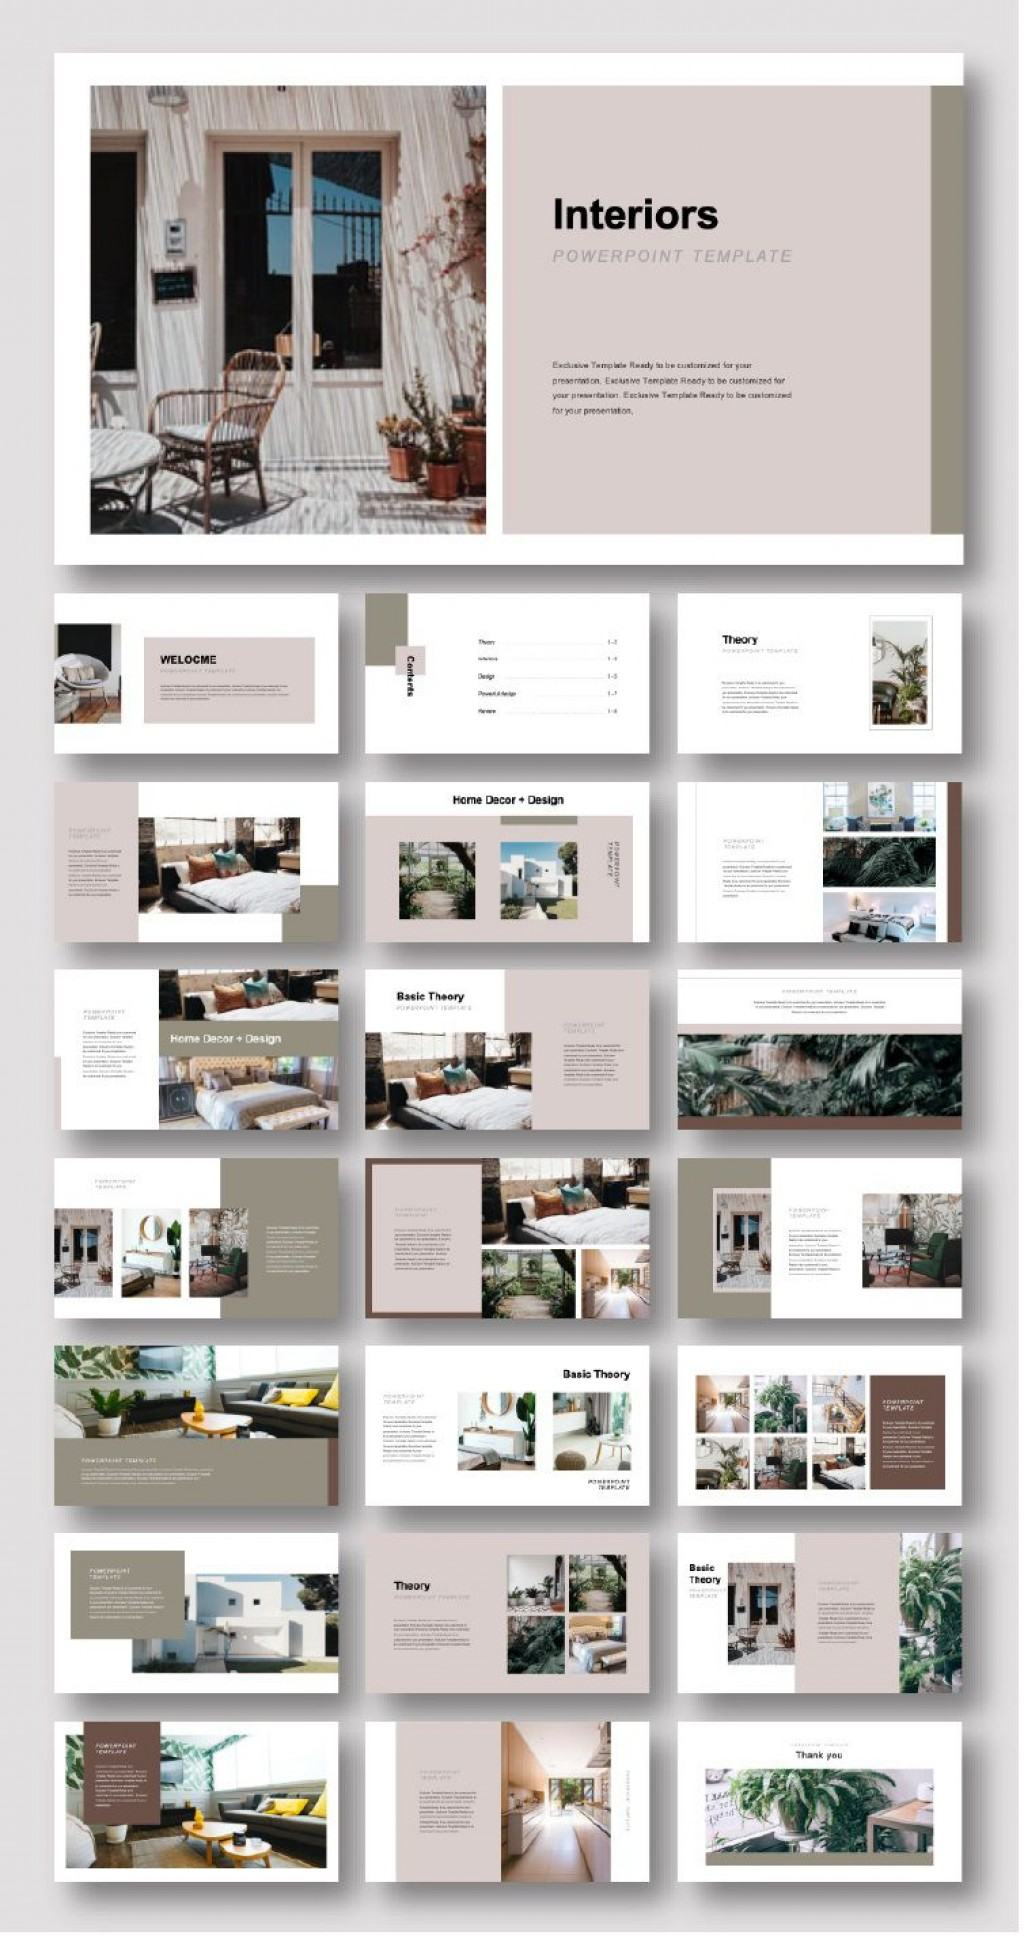 002 Sensational Interior Design Portfolio Template Image  Ppt Free Download LayoutLarge